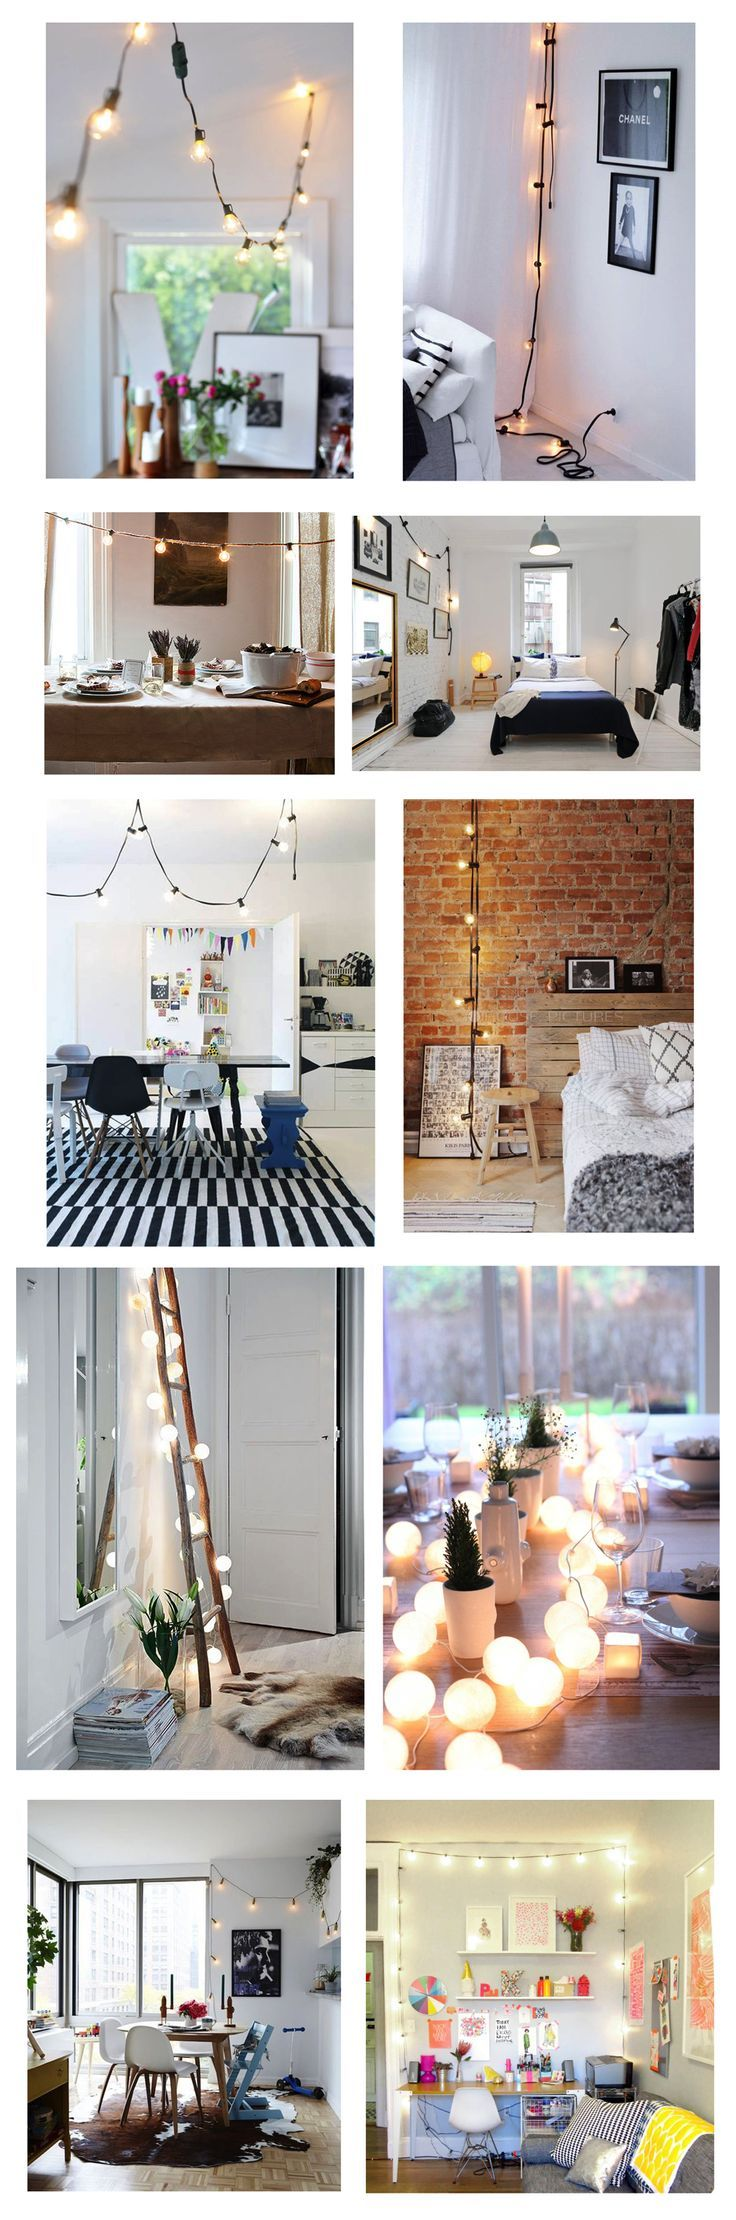 Decorating With Hanging Globe Lights Indoors | indoor light decor | how to decorate with hanging lights | indoor home decor | home decor tips and tricks | ideas for decorating with lights inside || Glitter, Inc.